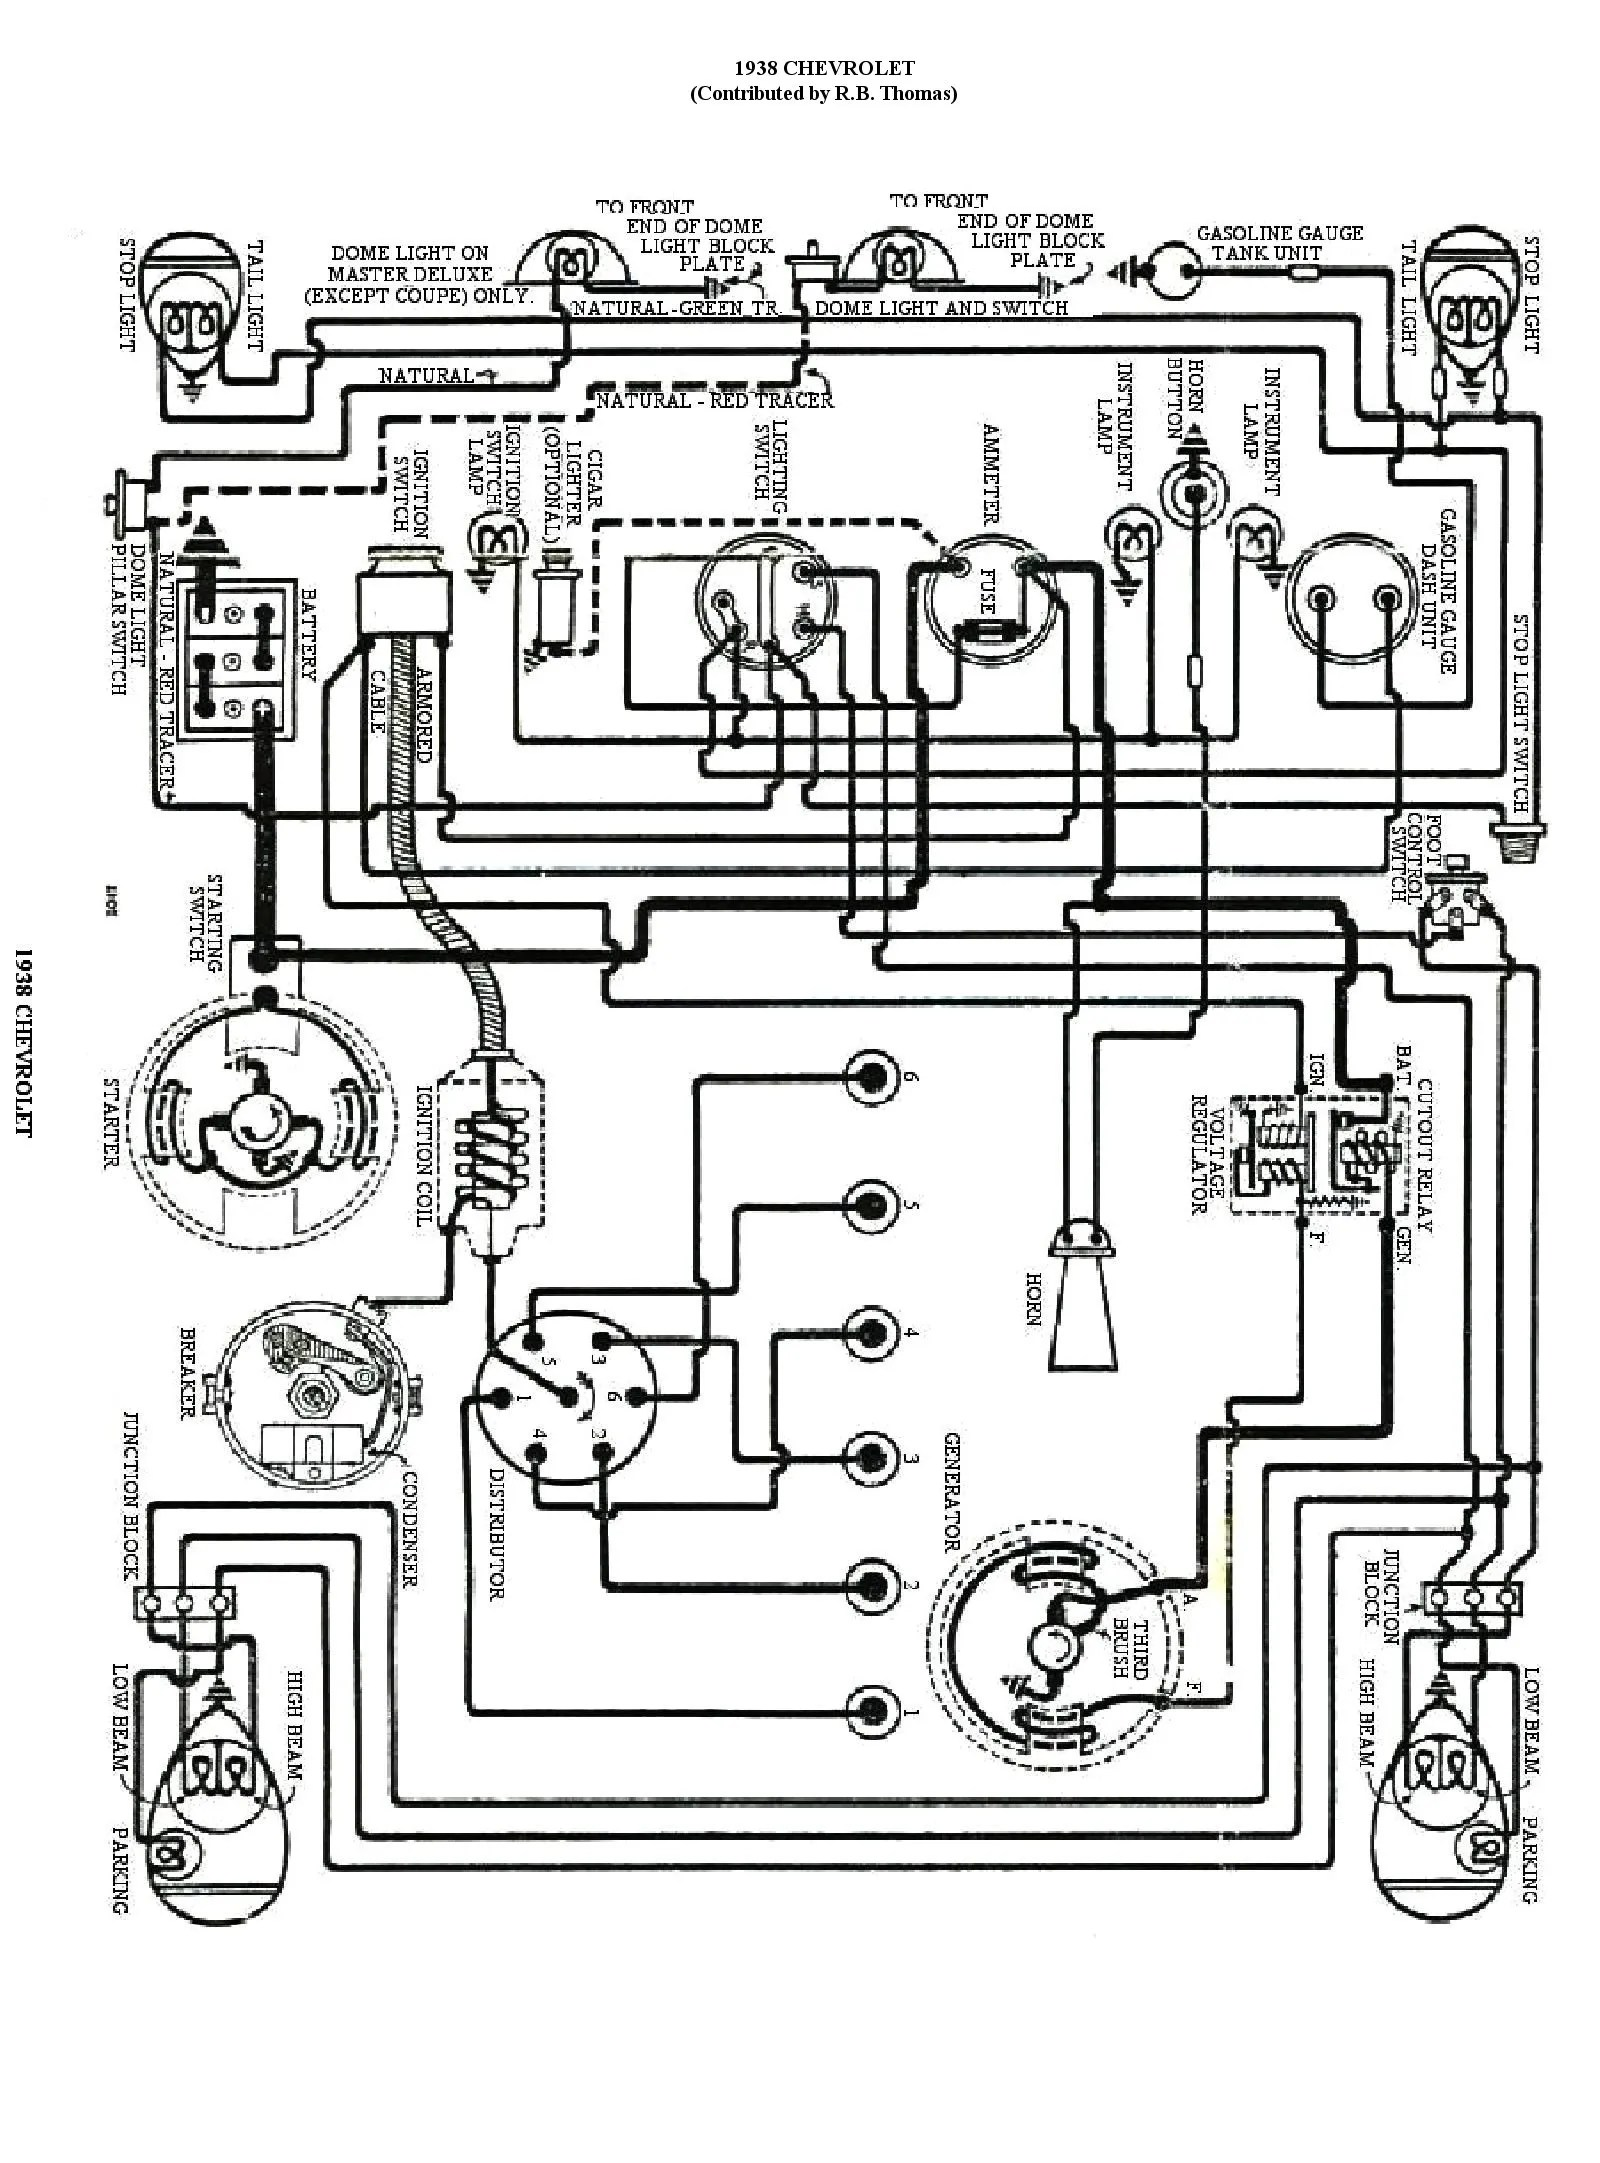 hight resolution of free wiring diagram corvair pontiac wiring diagram blogs wiring diagram 1990 cadillac allante 1941 cadillac wiring diagram